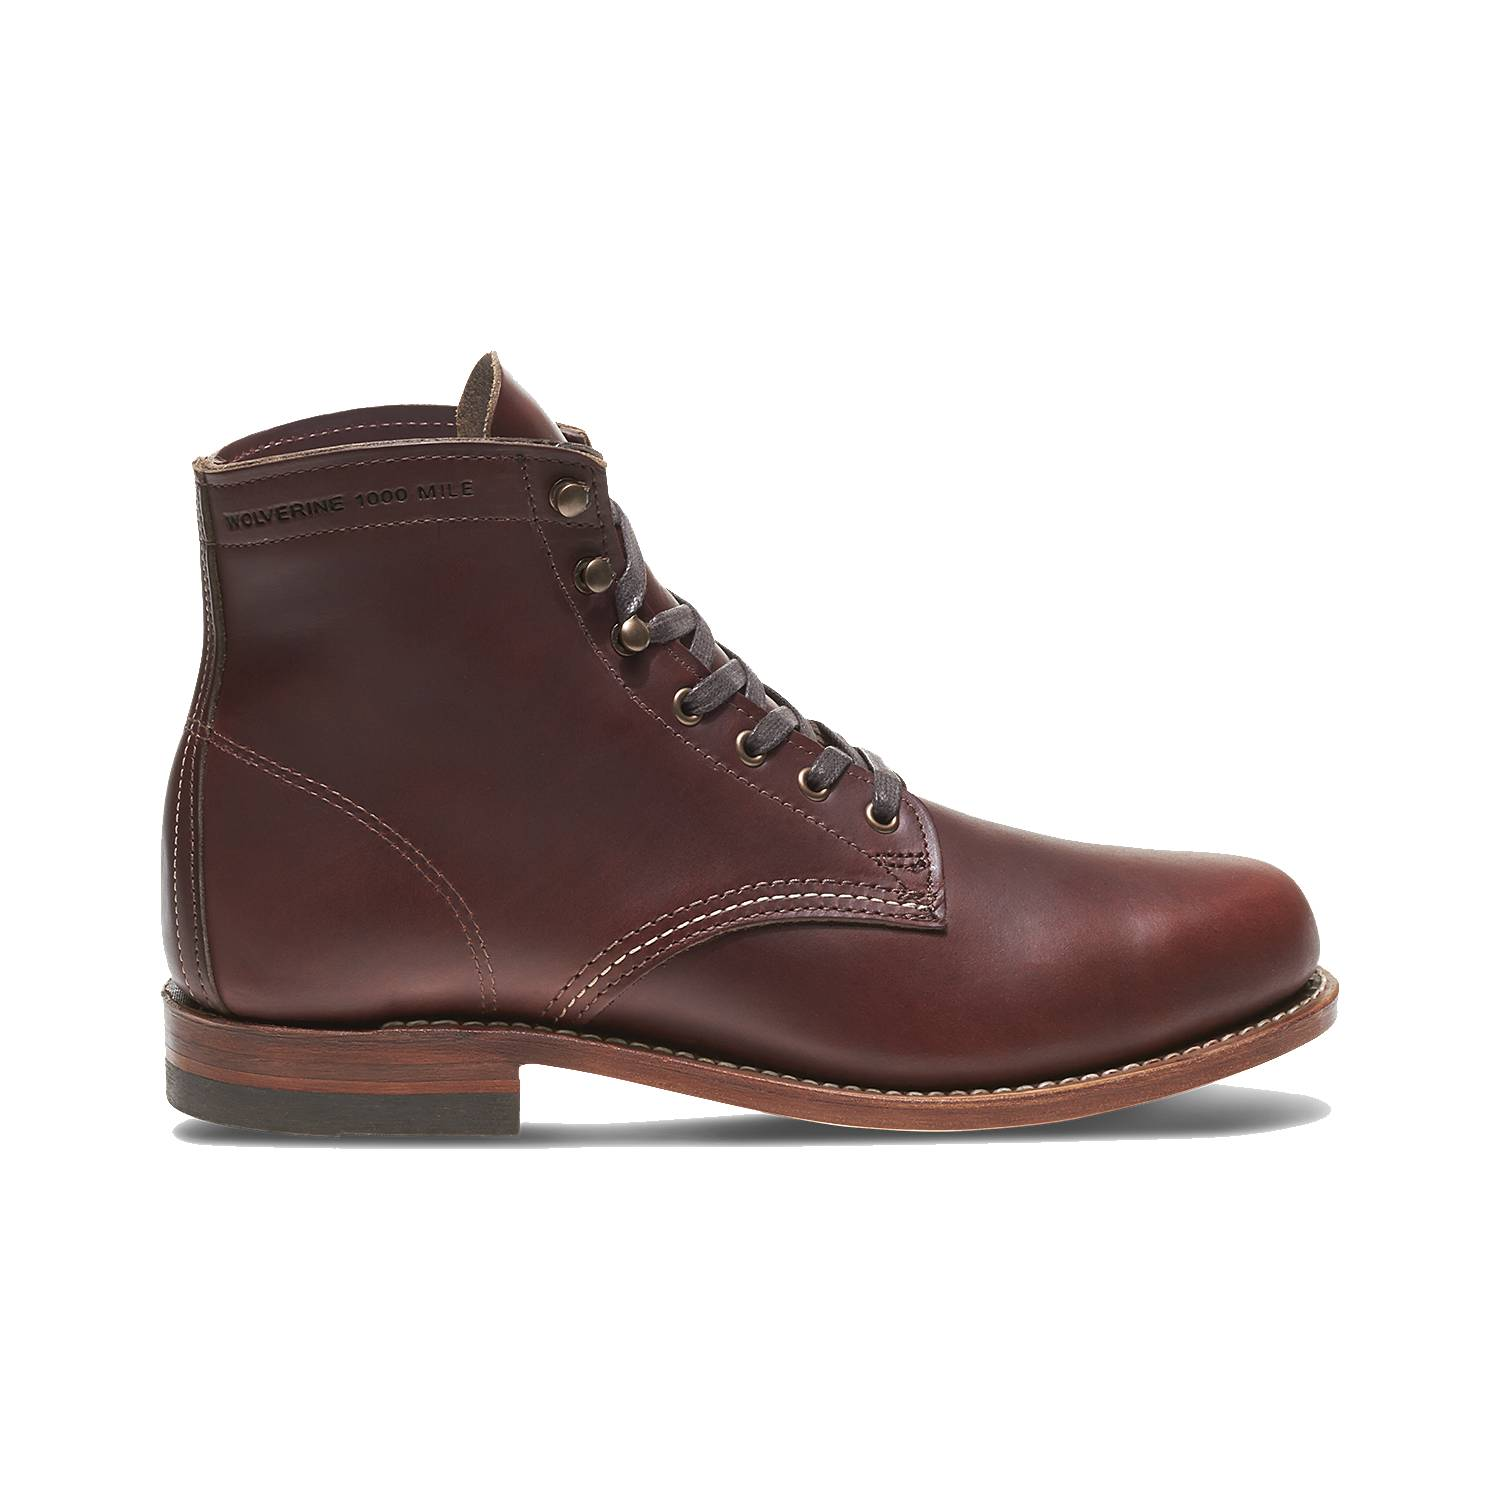 Wolverine-1000-Mile-Men-039-s-Leather-Boots-Cordovan-8-Black-Brown-Rust thumbnail 15